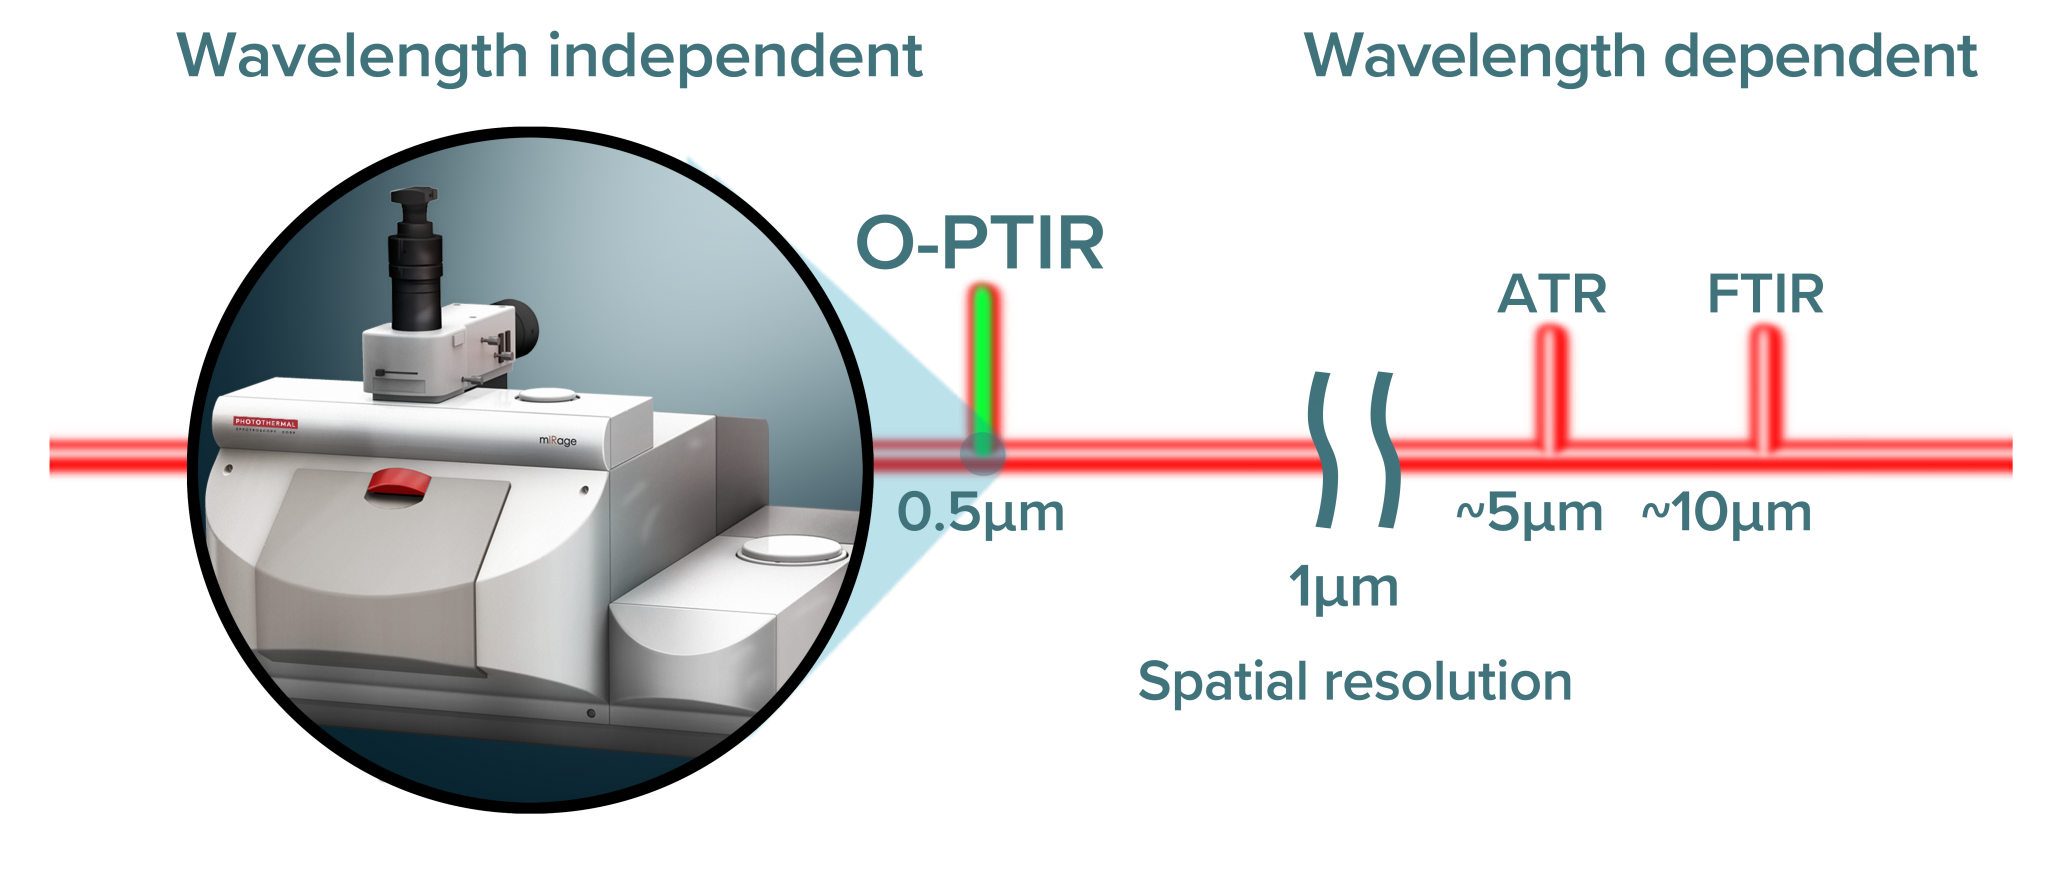 Chart comparing infrared wavelength diffraction limits of O-PTIR, ATR, and FTIR